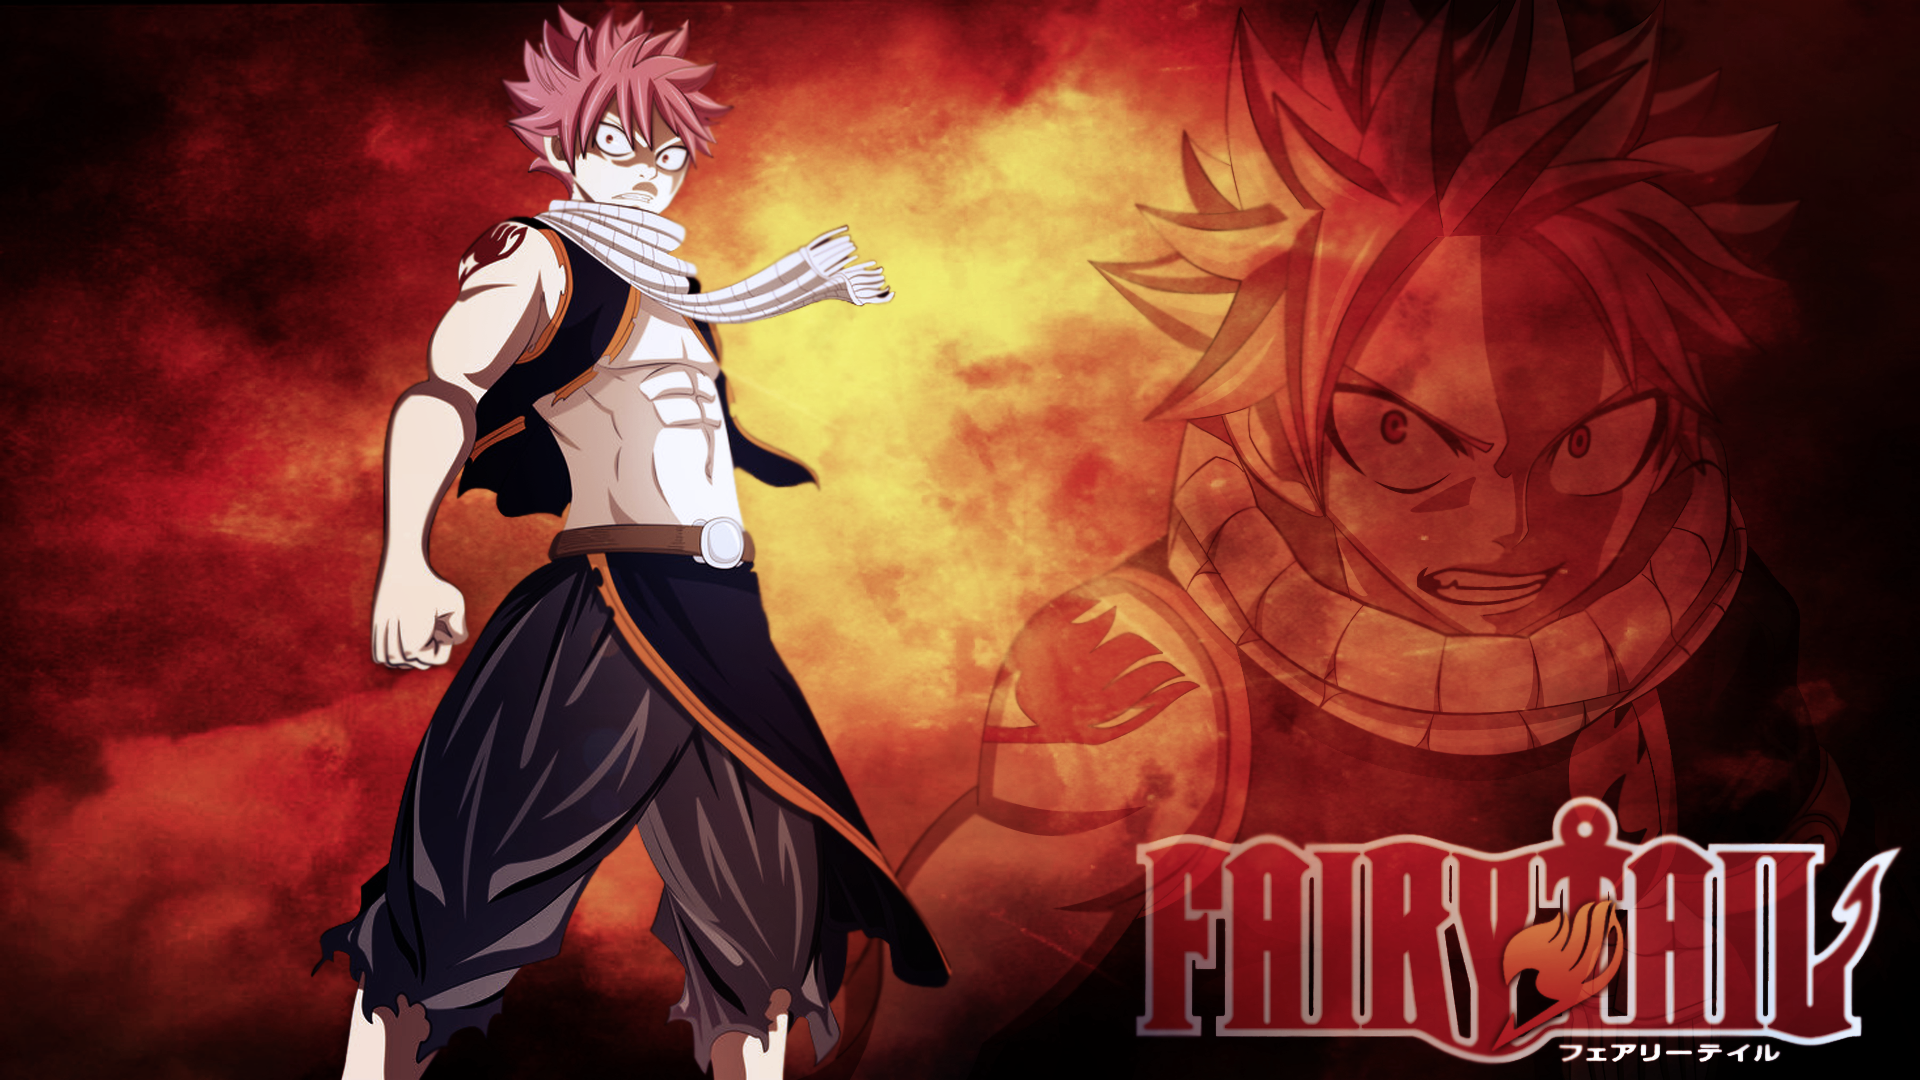 Fairy Tail Wallpaper Background HD 5911 Wallpaper Cool 1920x1080